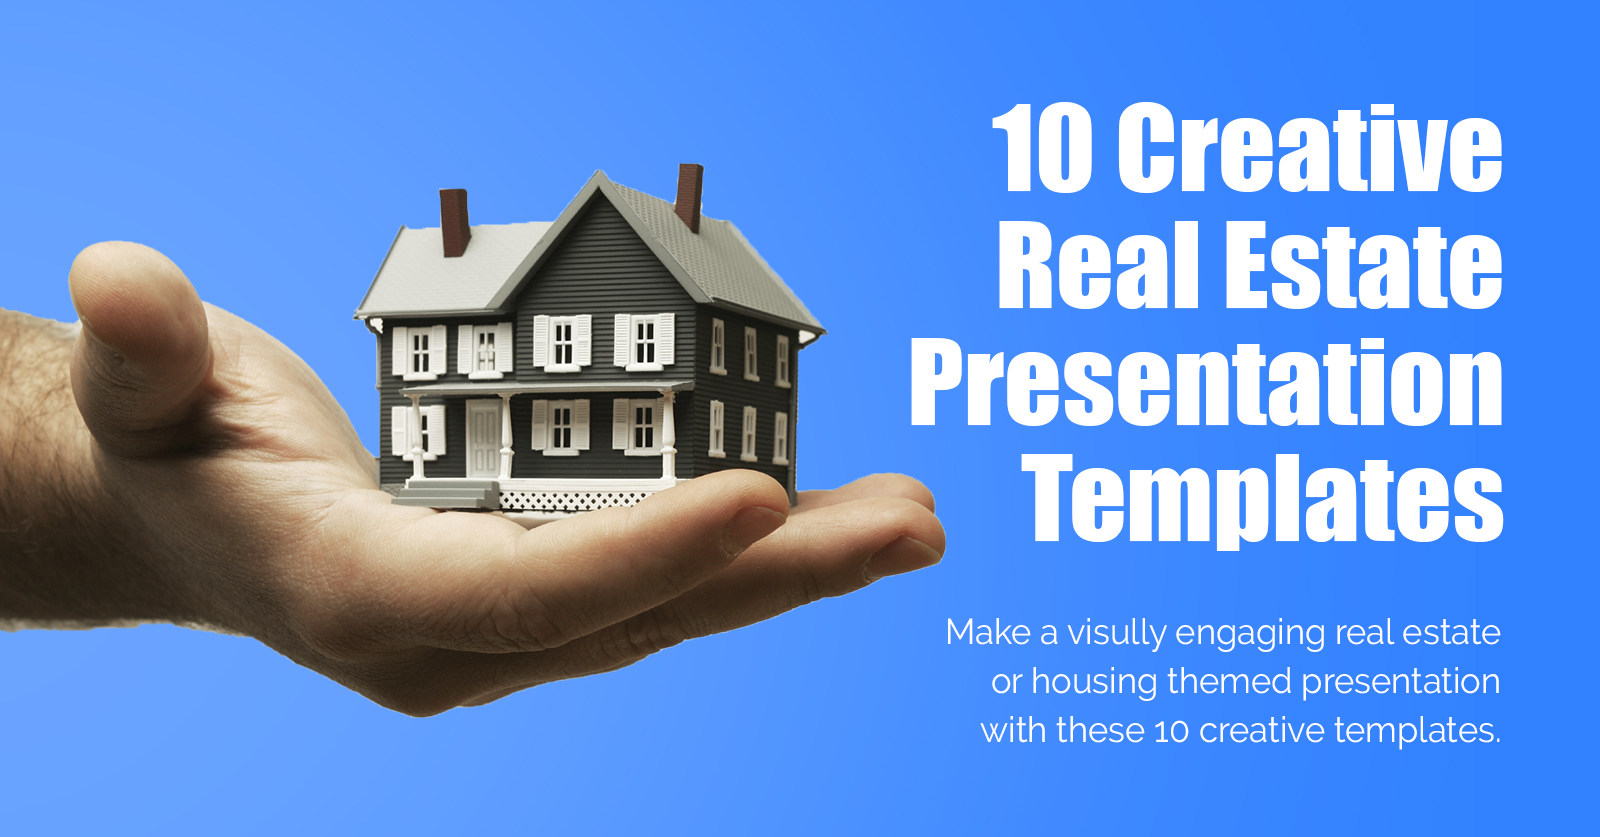 creative-real-estate-presentation-template-gallery